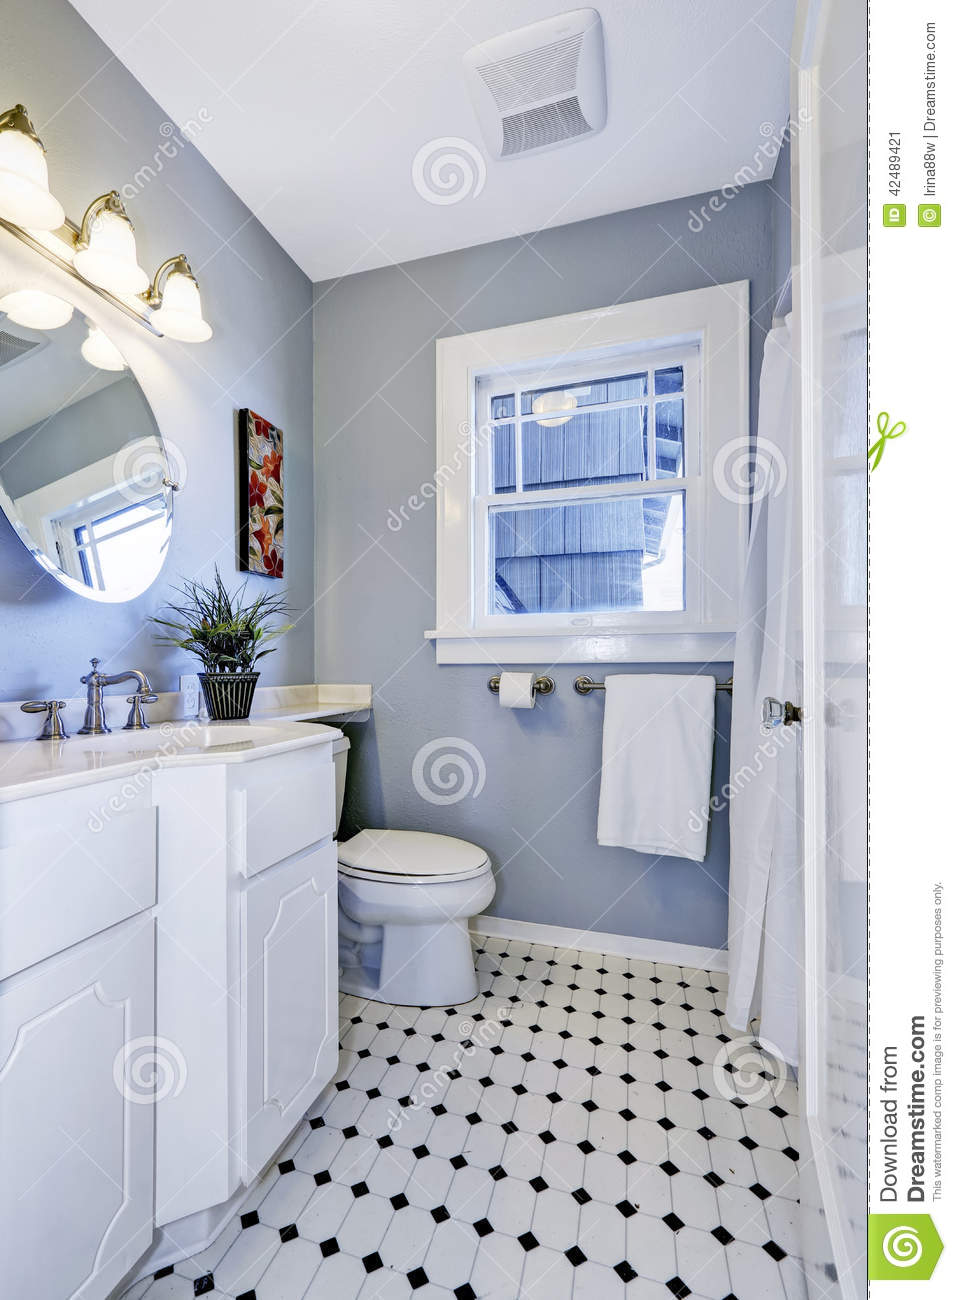 Light Bathroom Colors Bright Bathroom Interior In Light Blue Color Stock Photo Image